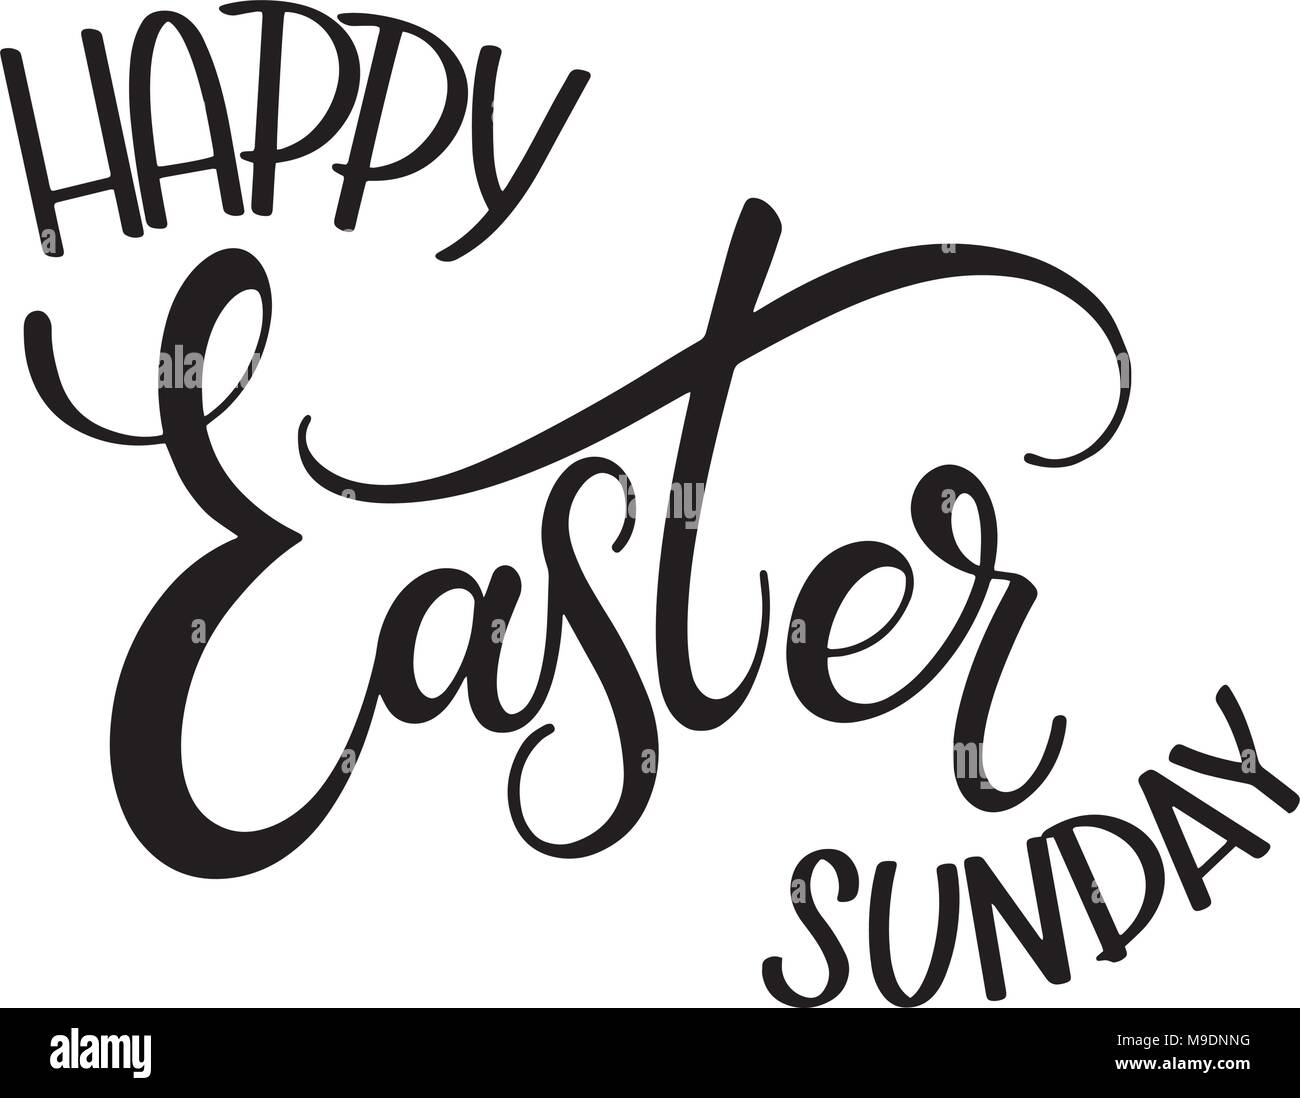 Happy Easter Sunday Lettering Hand Written Easter Phrases Seasons